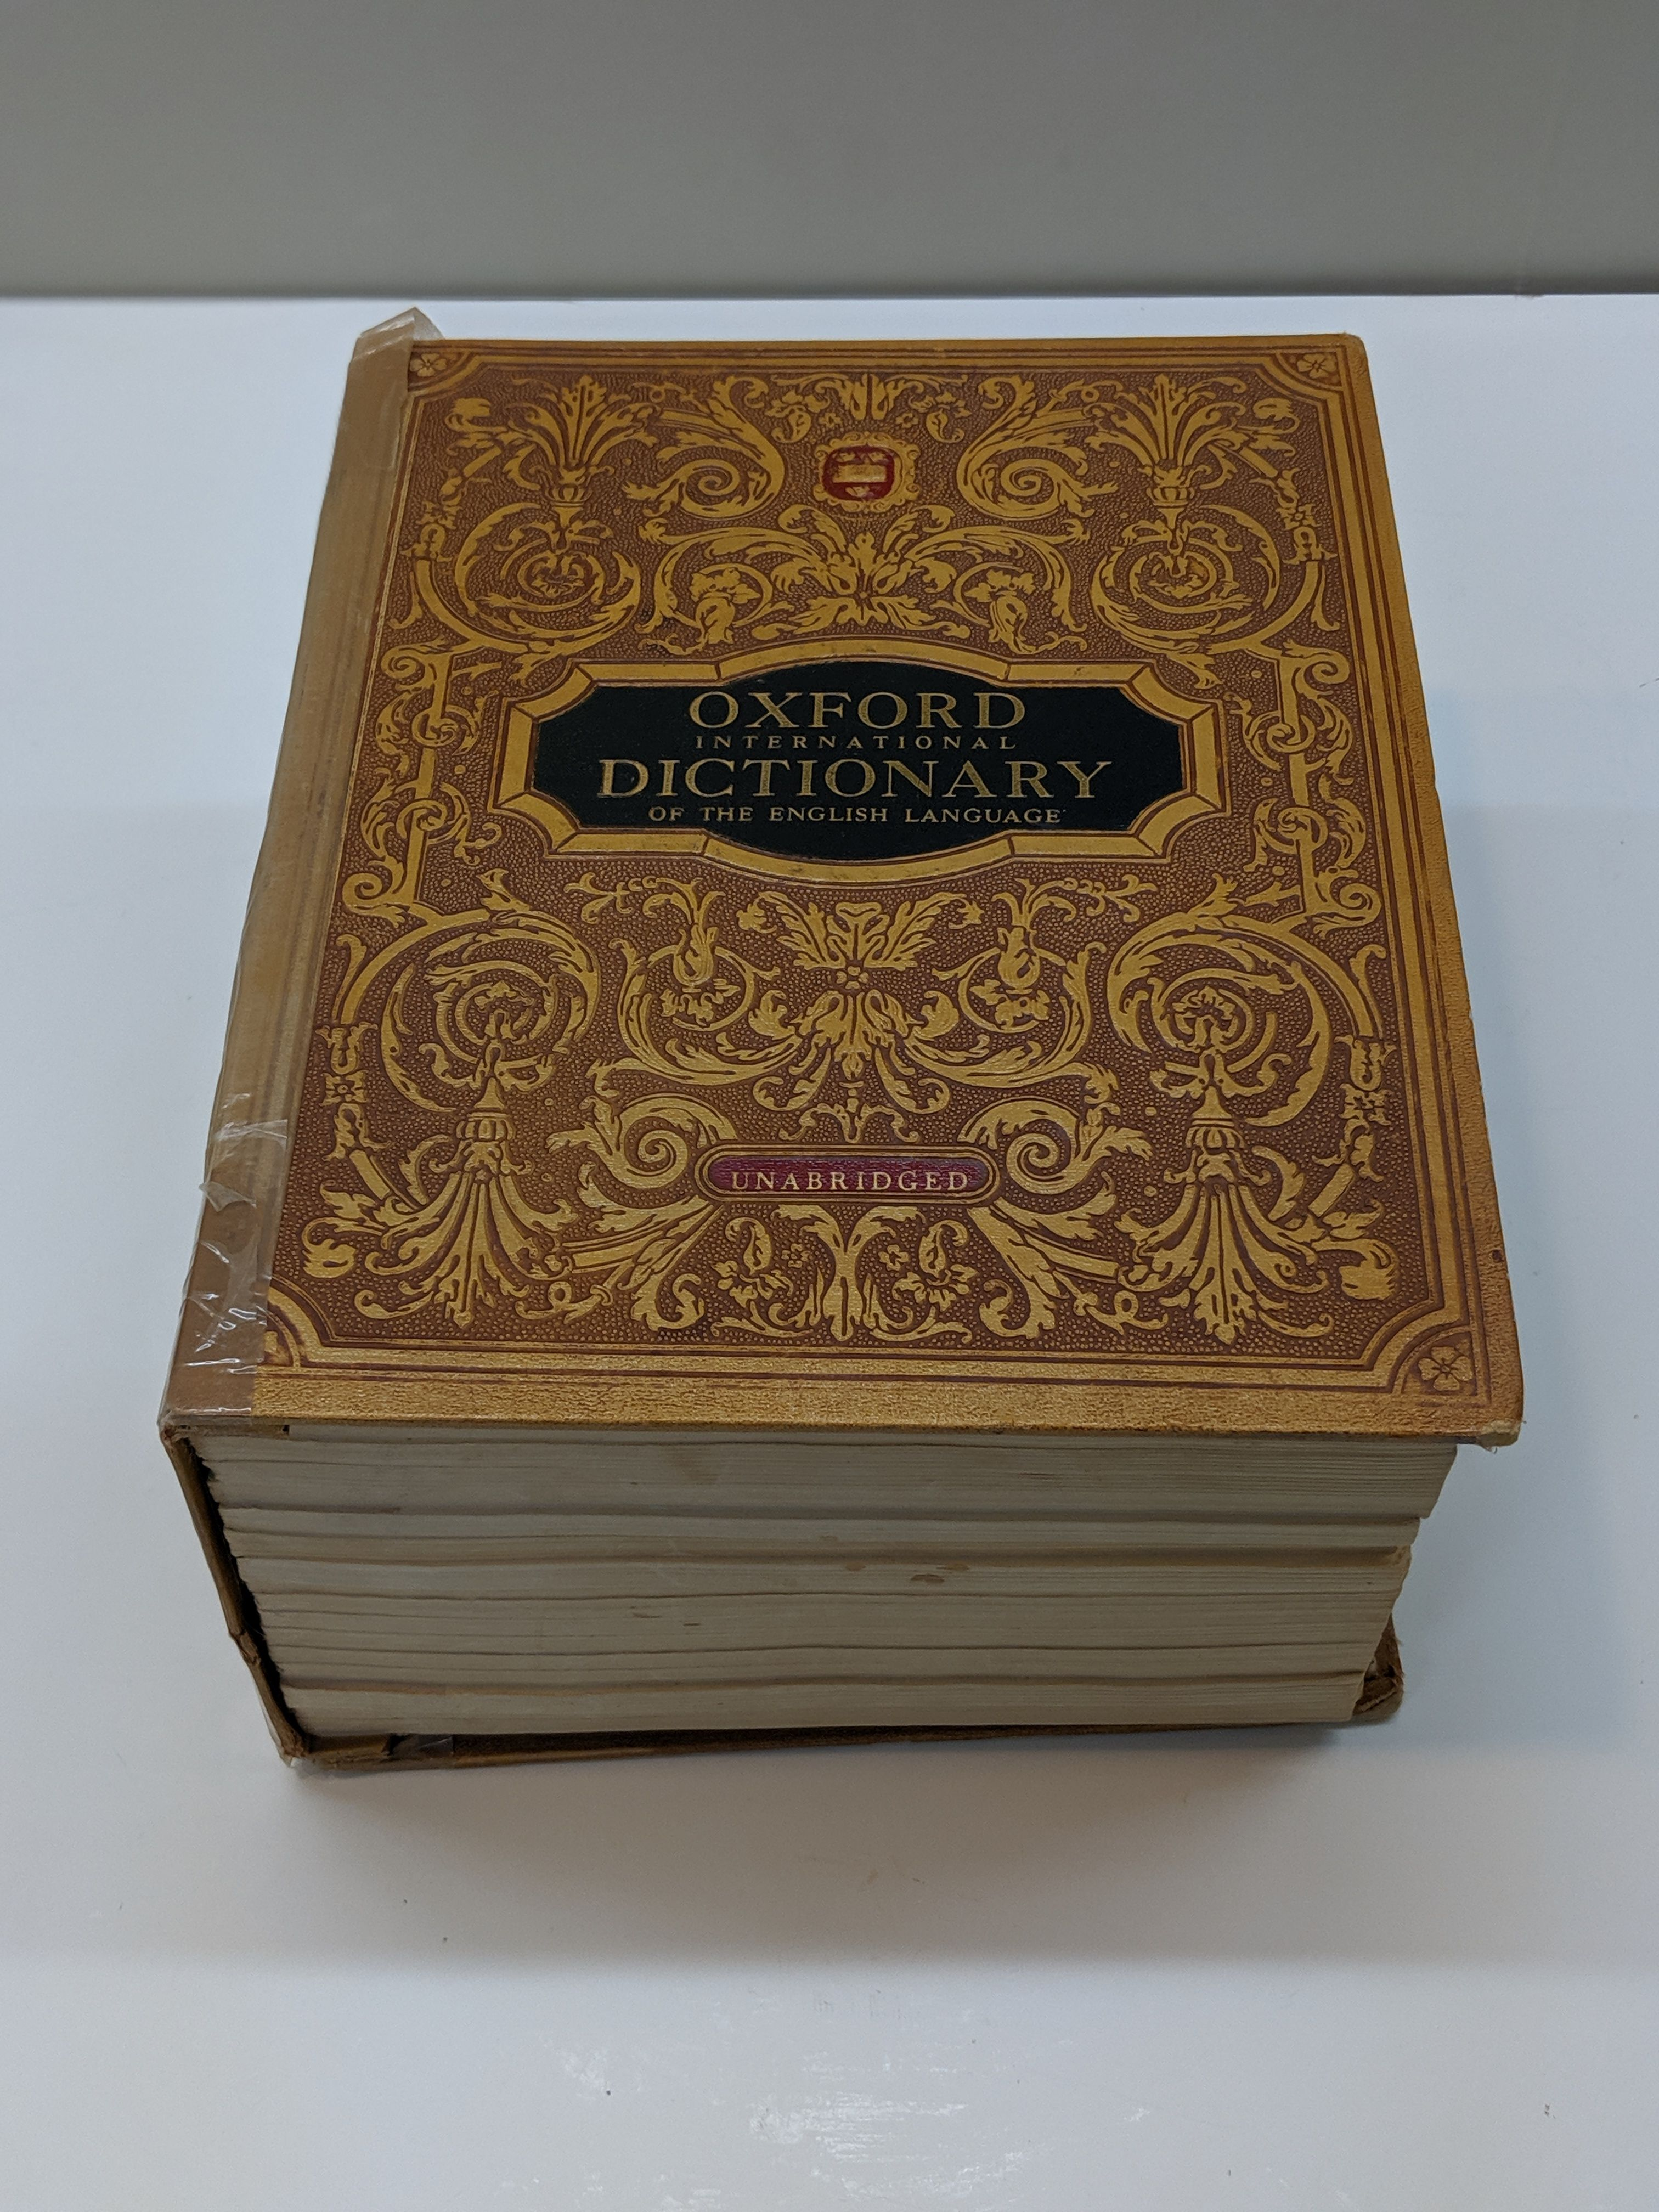 Oxford International Dictionary Of The English Language   English language, Language, Oxford